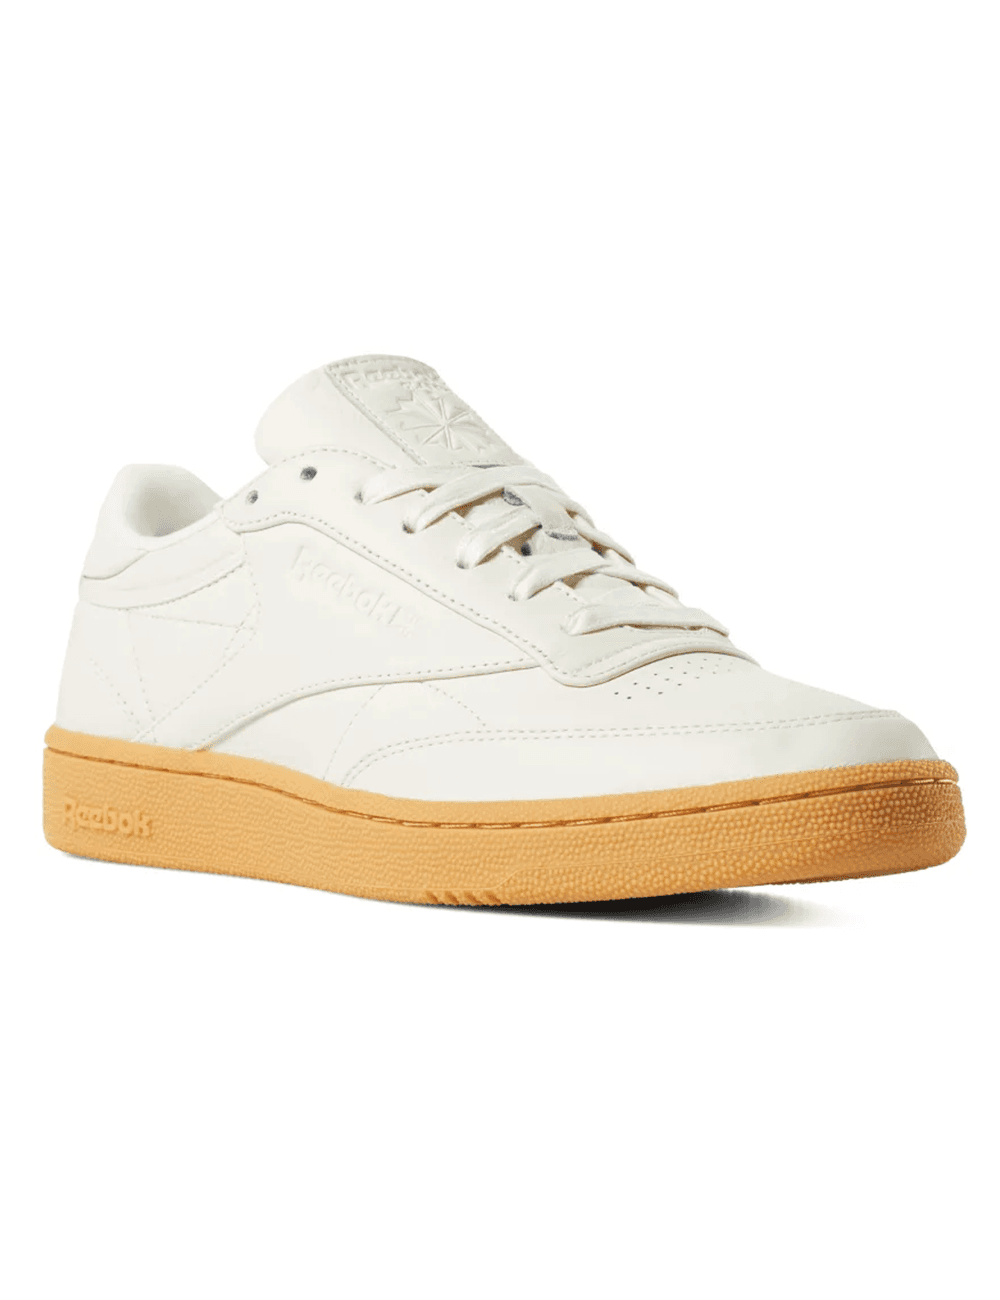 b03e0c00054 Reebok Club C 85 MU Trainers - White Gum - Footwear from Fat Buddha ...